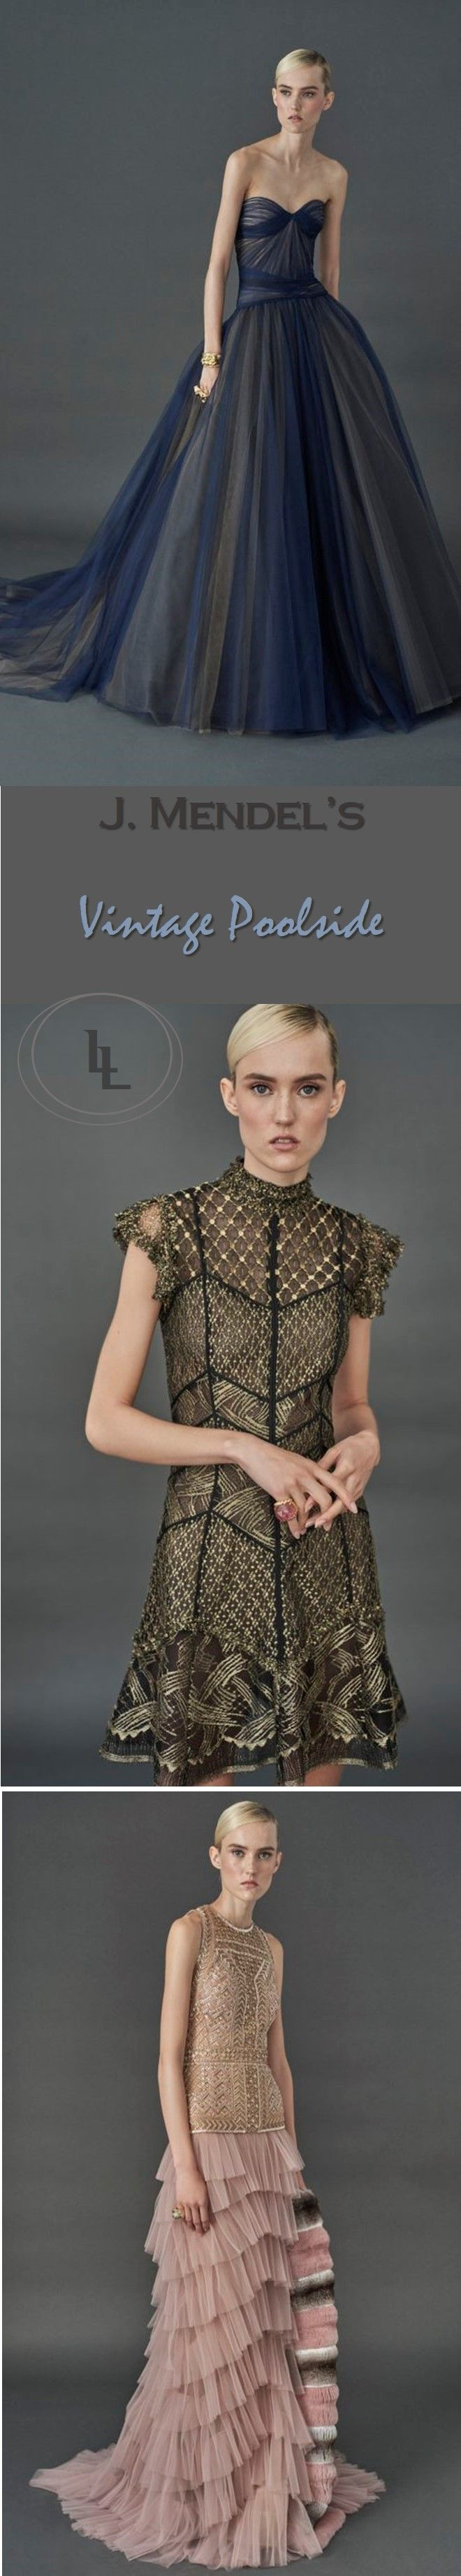 Runway Fashion Review: Best looks from J. Mendel's vintage poolside vibe collection | Blue sheer strapless gown, green lace cap sleeve, and nude pink tiered ruffle dress | The Luxe Lookbook